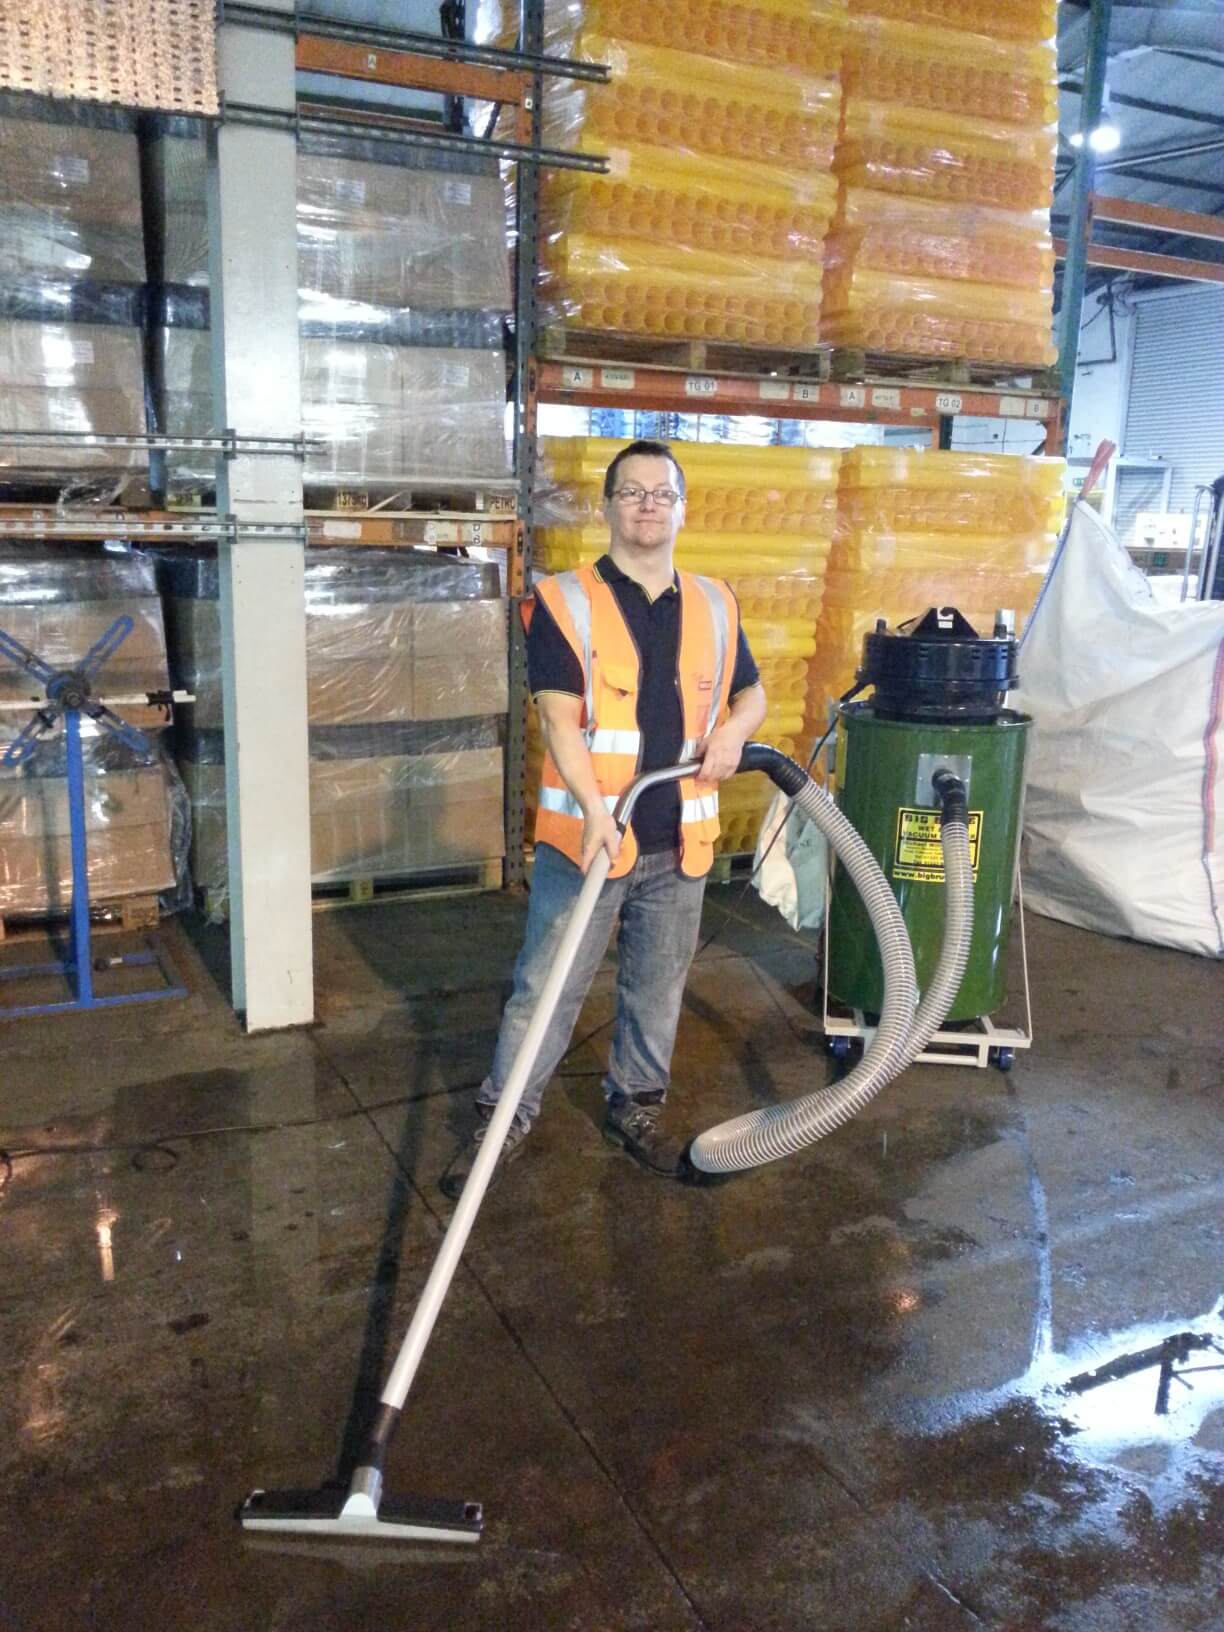 Naylor Specialist Plastics Cleaning Up With A Big Brute Wet & Dry Industrial Vacuum Cleaner